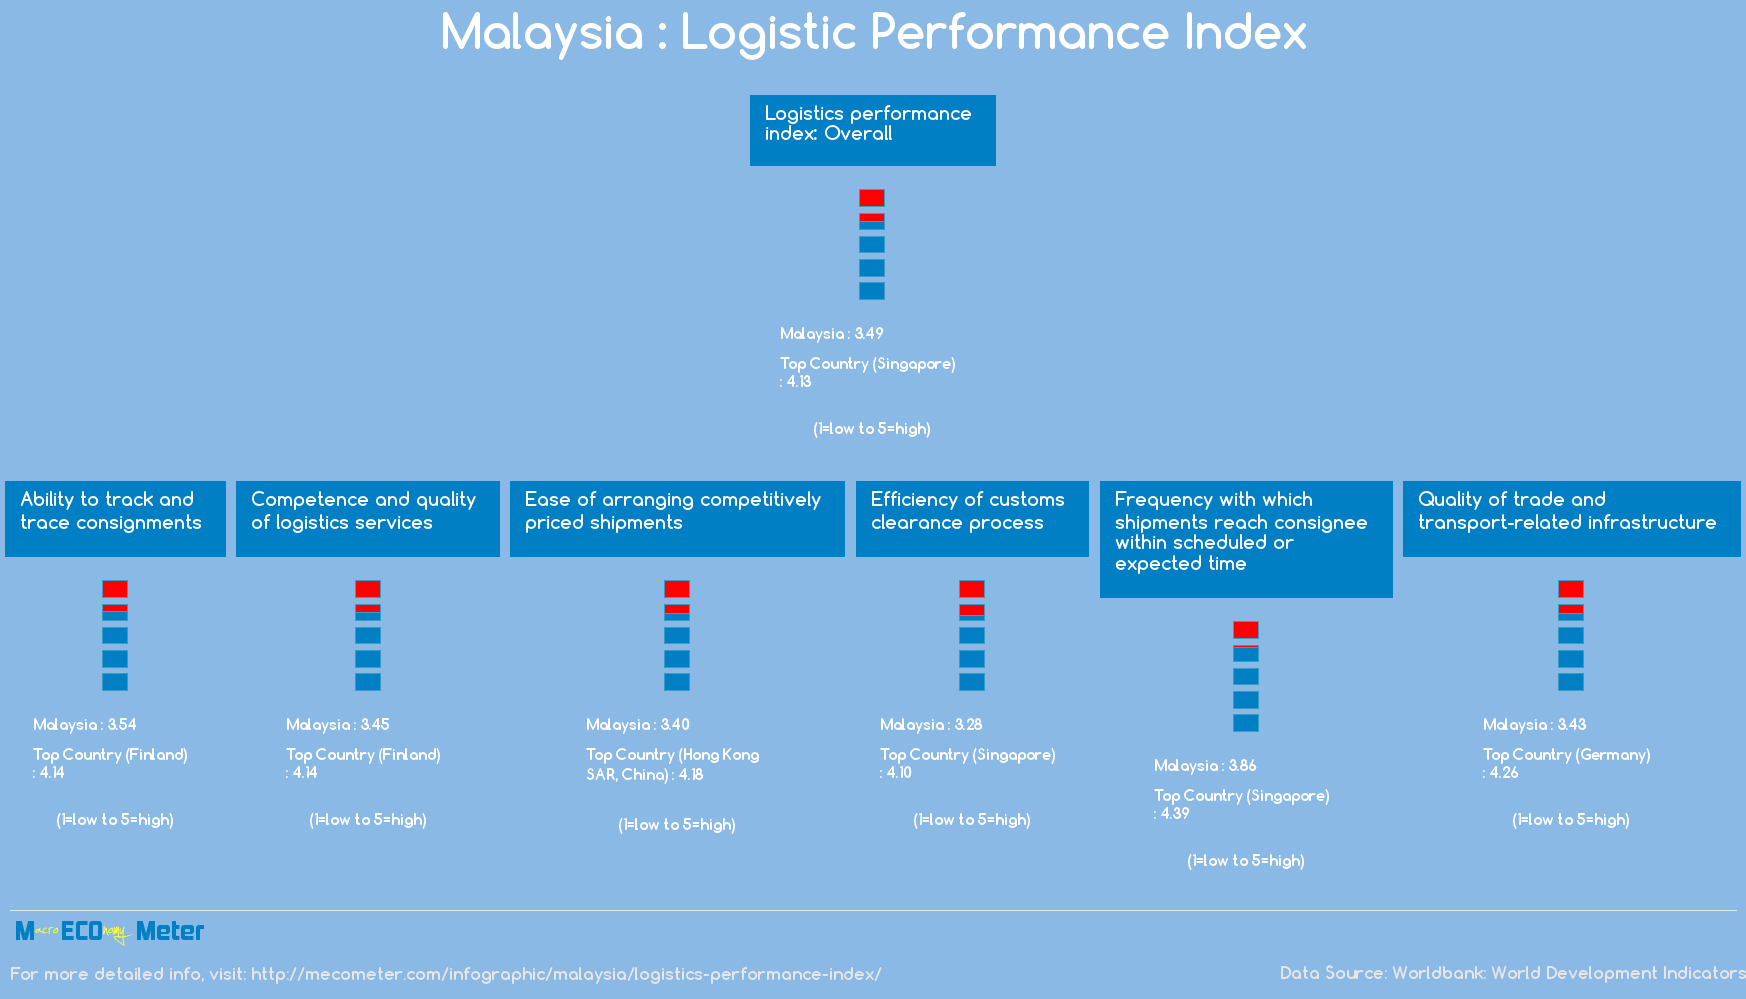 Malaysia : Logistic Performance Index